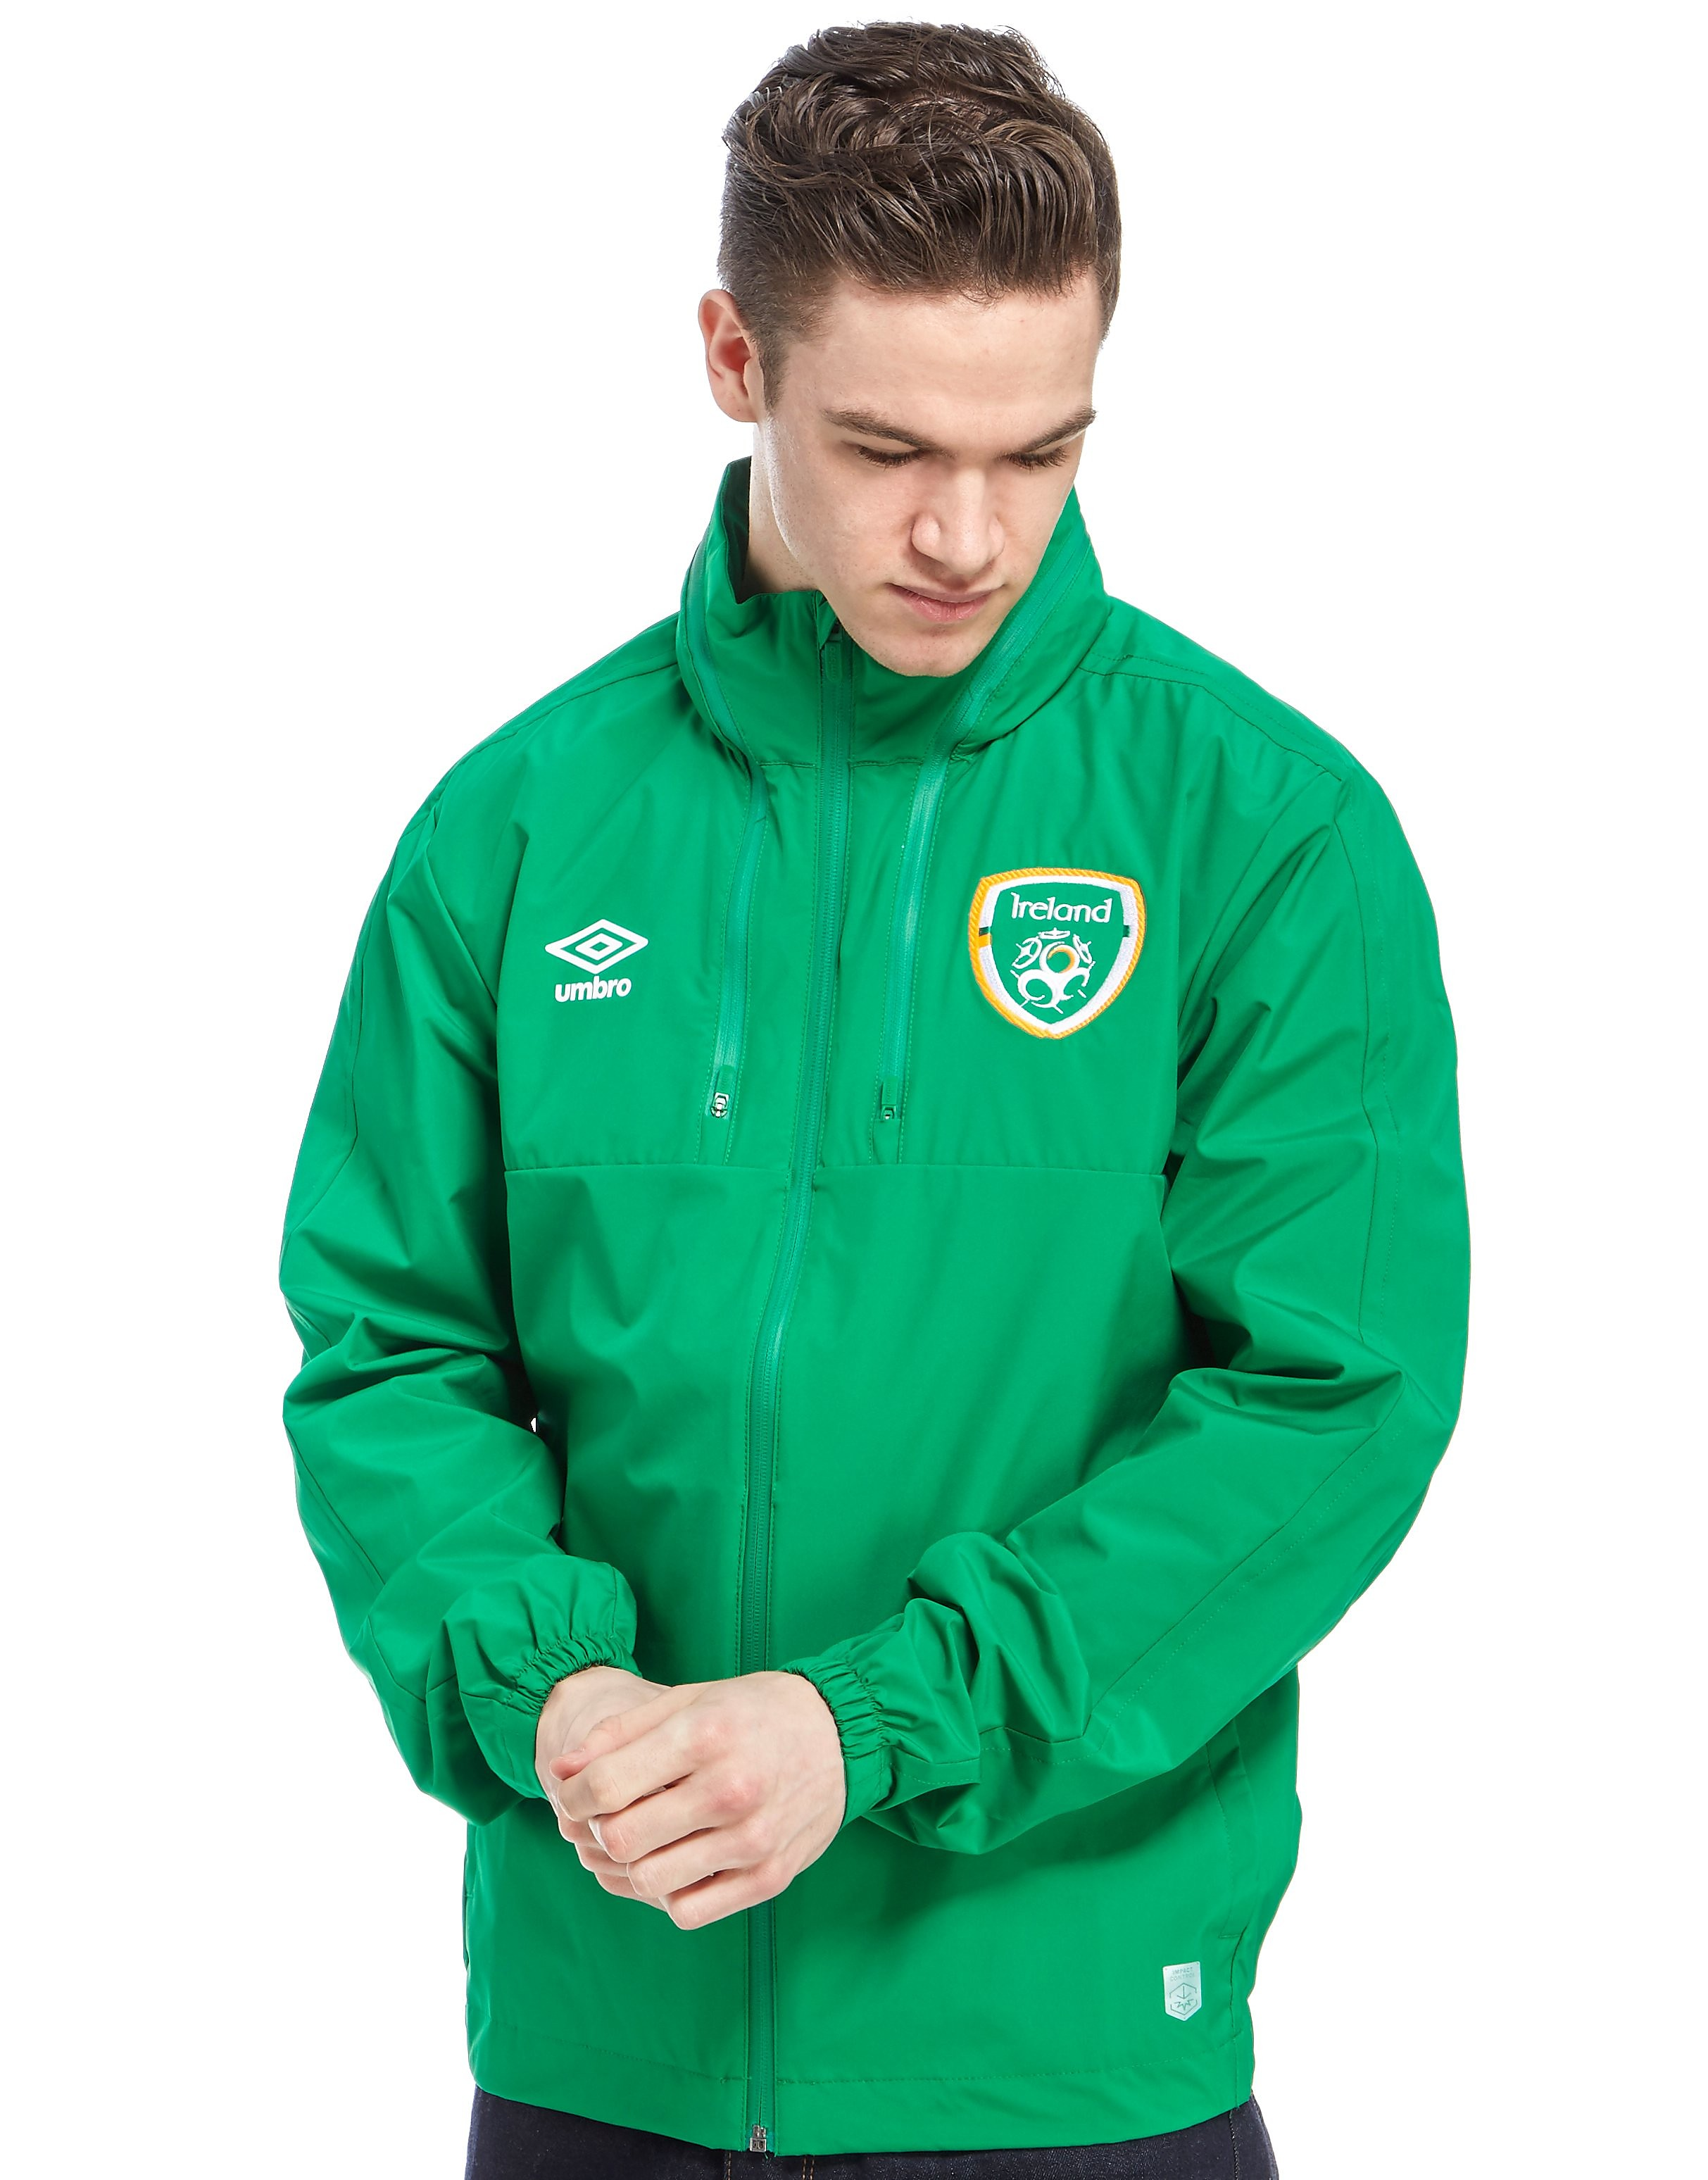 Umbro Ireland Walkout Jacket